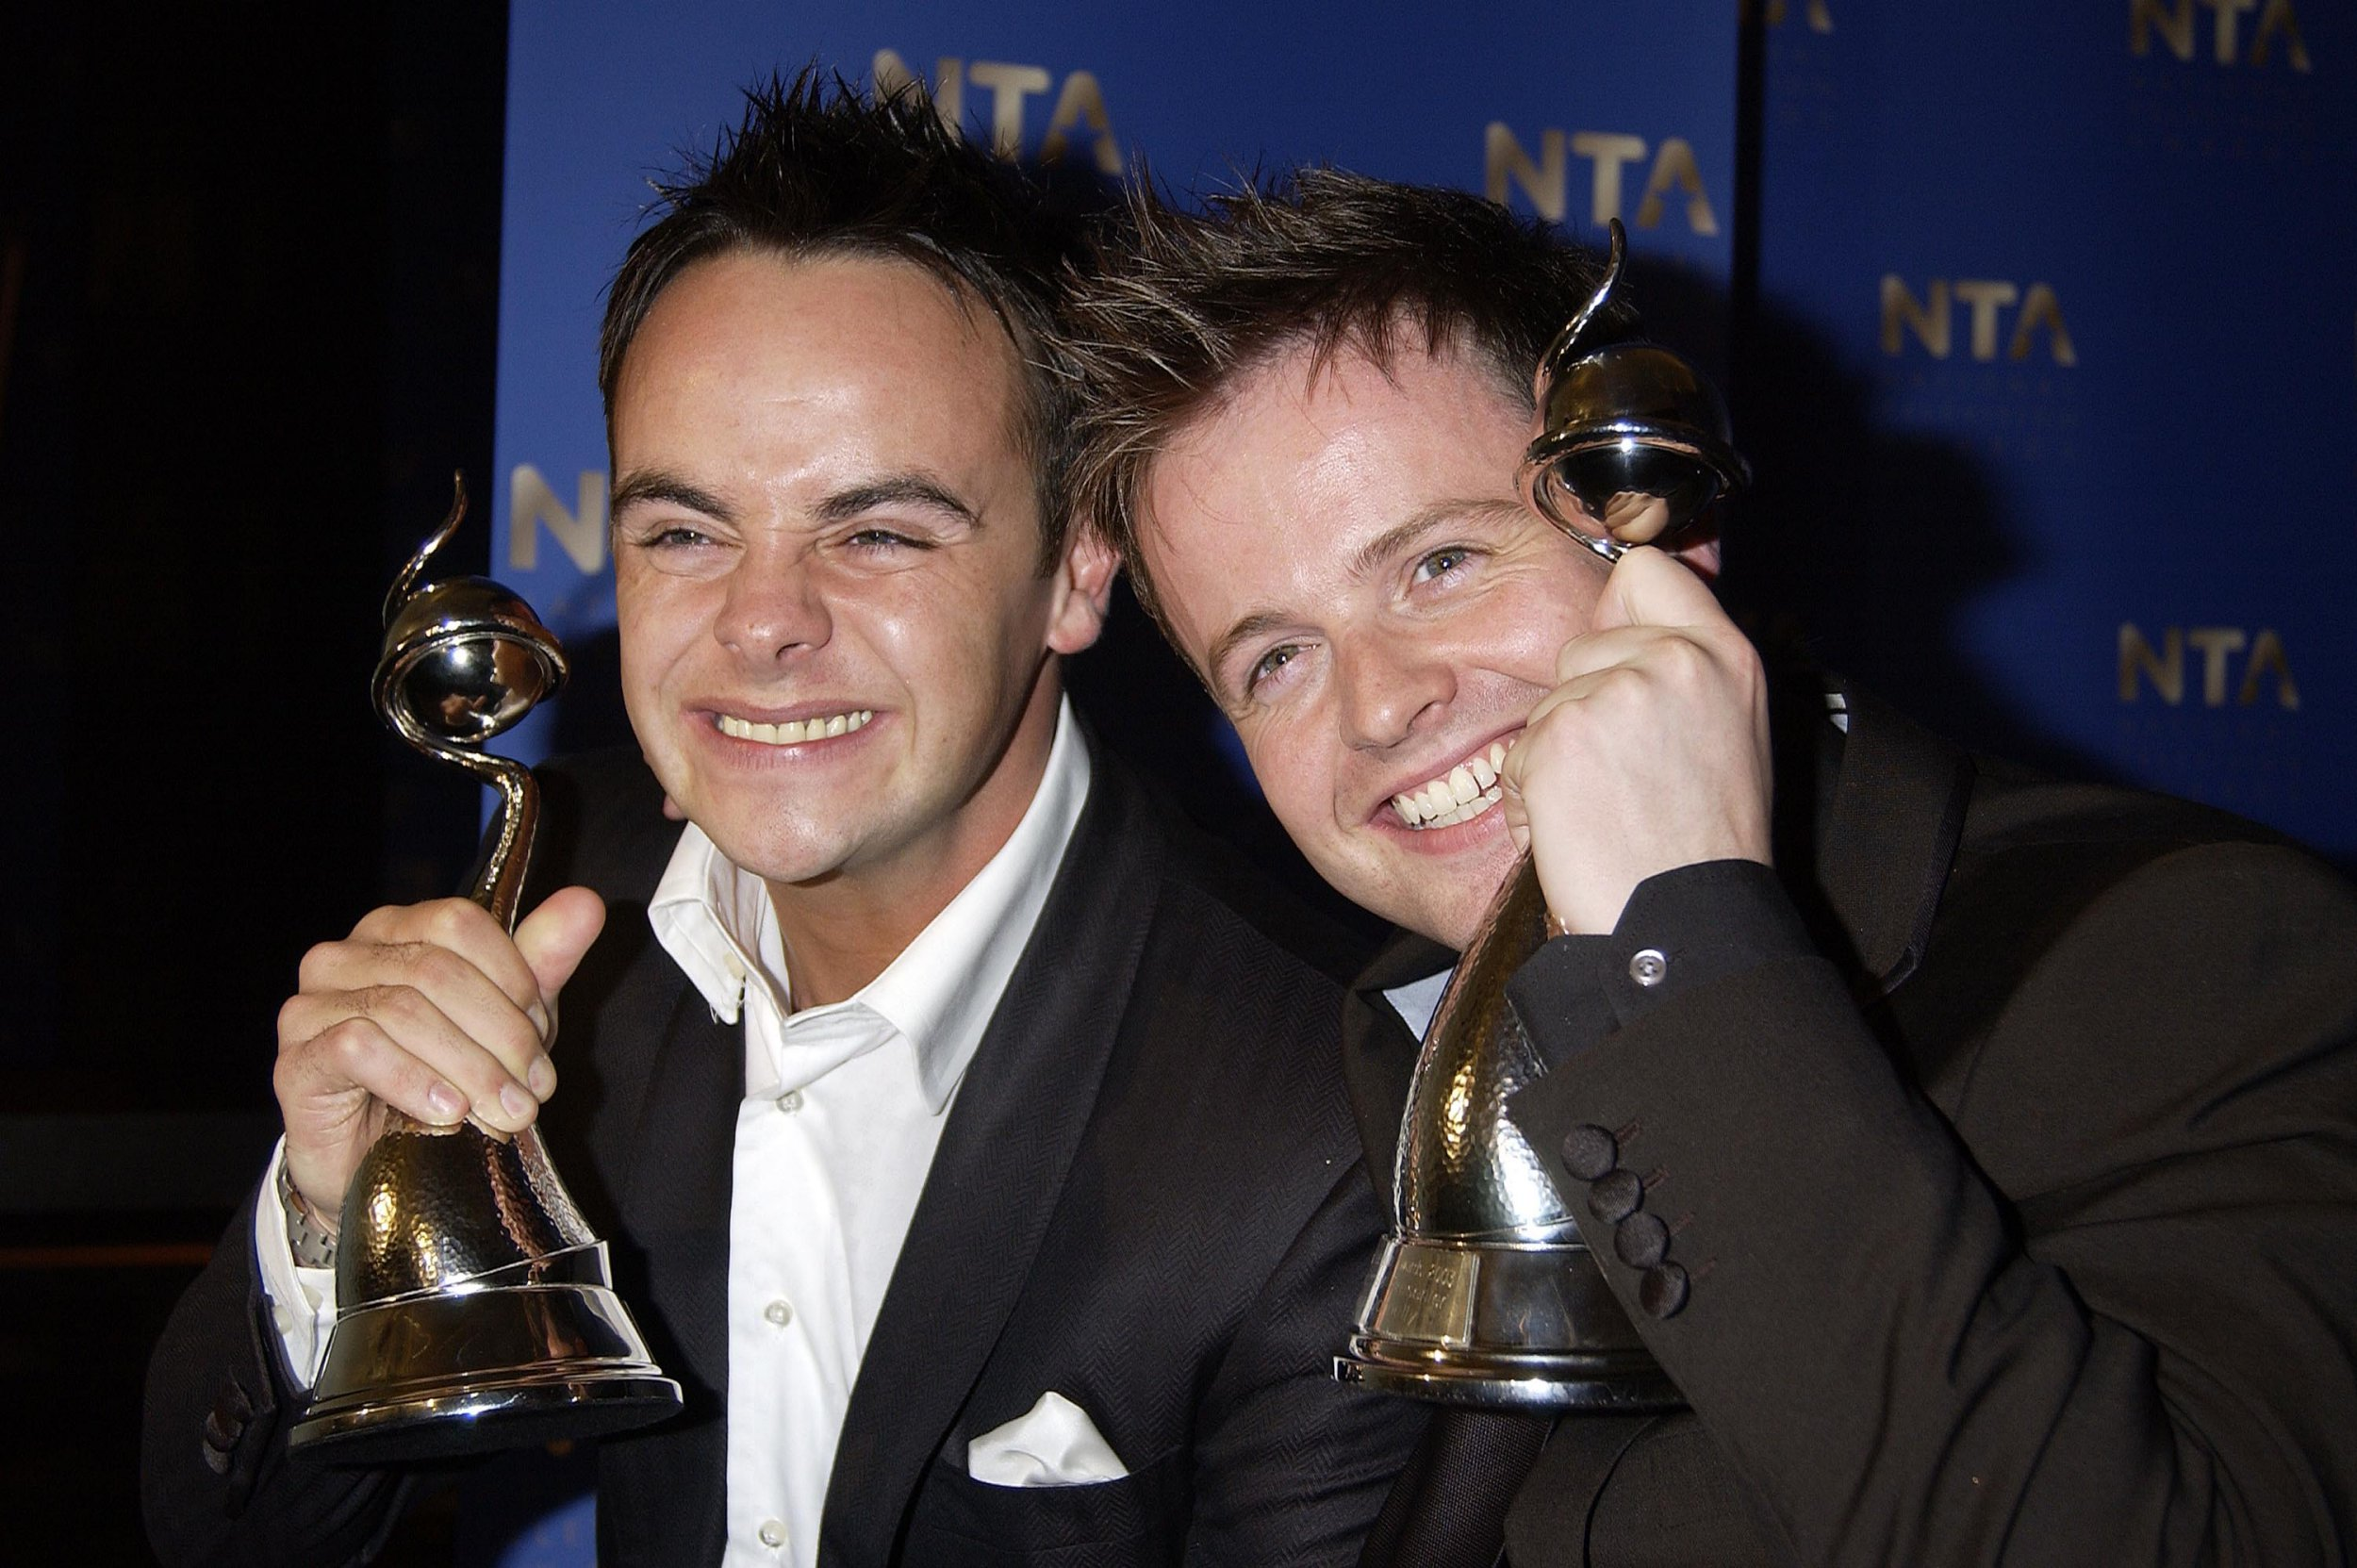 Mandatory Credit: Photo by Alan Davidson/REX/Shutterstock (7527083do) National Television Awards at the Royal Albert Hall Press Room - Anthony Mcpartlin and Declan Donnelly Collect the Award For Best Entertainment Programme 'Ant and Dec's Saturday Night Takeaway' 2003 Nta - 28 Oct 2003